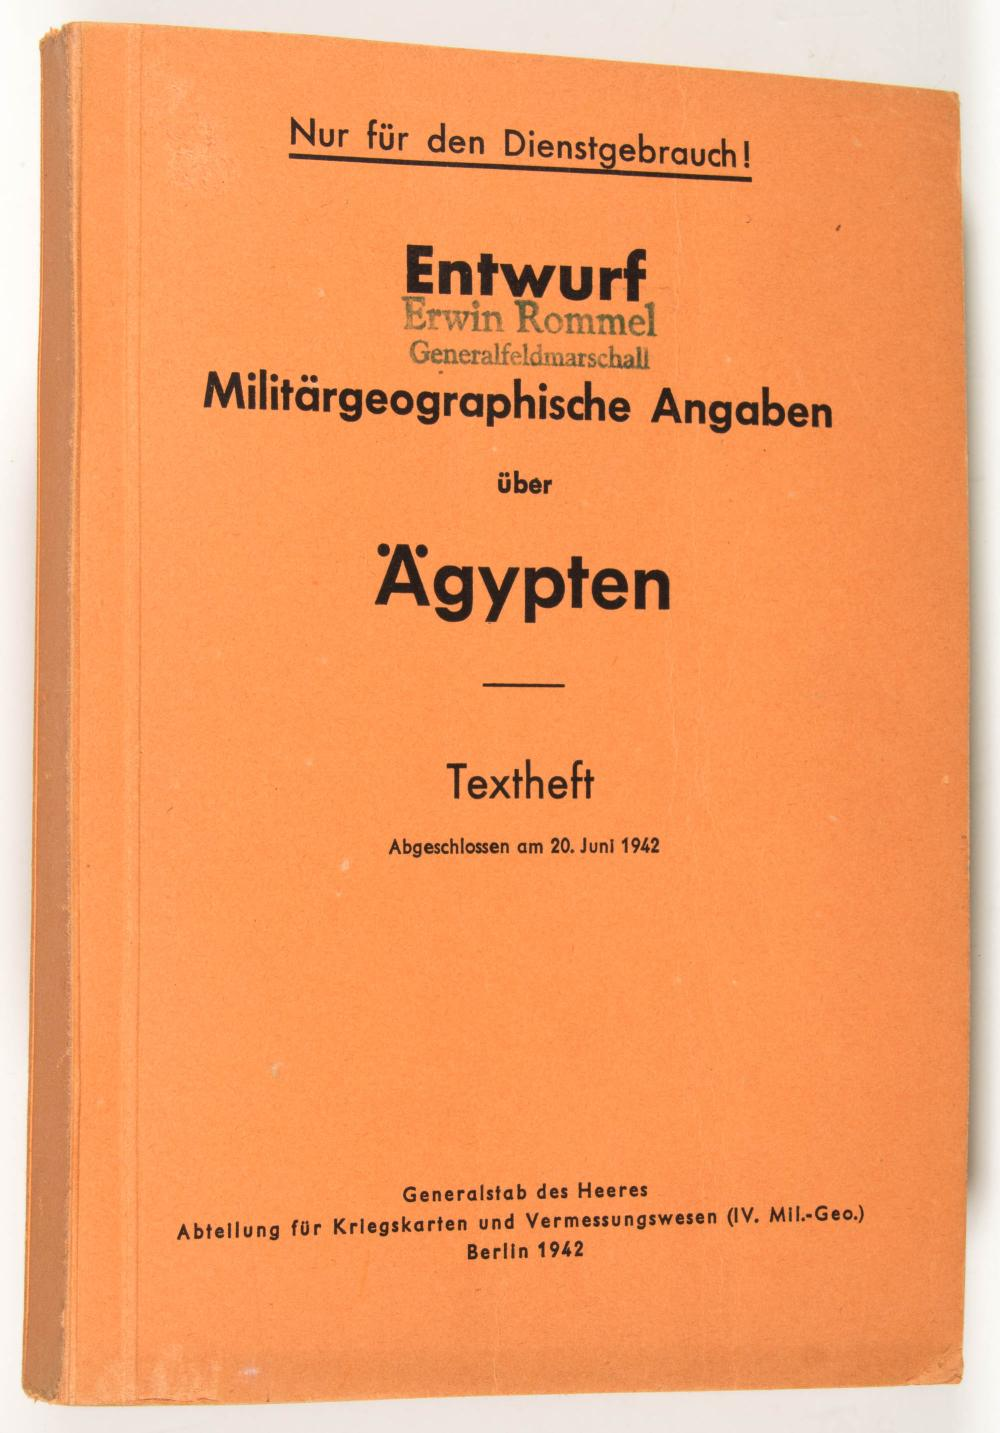 ERWIN ROMMEL'S 'GEOGRAPHY OF EGYPT' BOOK